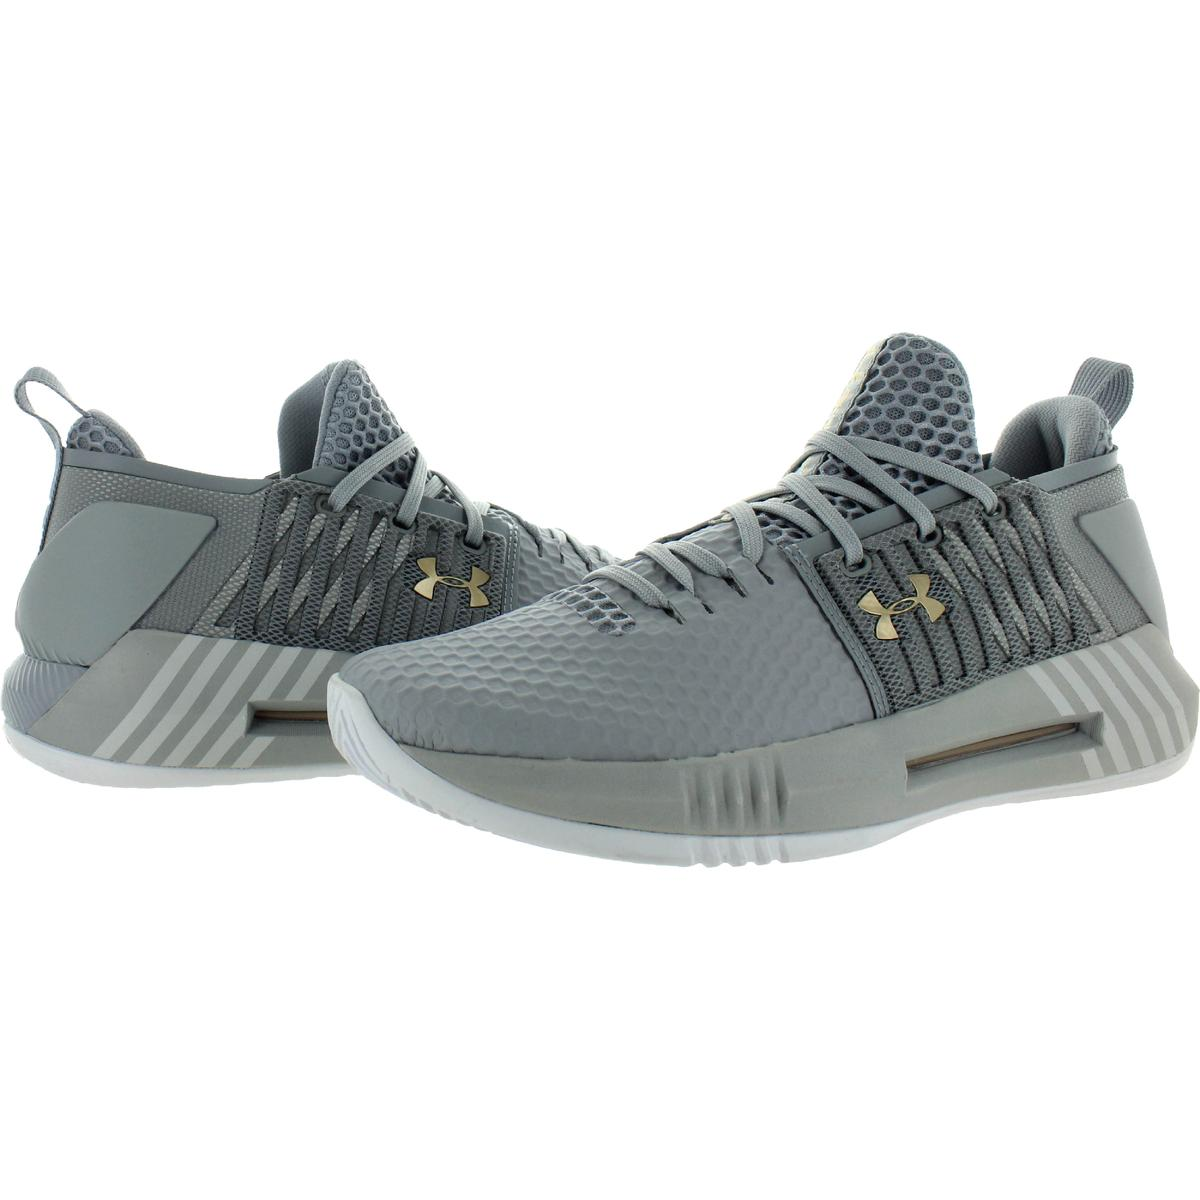 miniatuur 6 - Under Armour Mens Drive 4 Low Fitness Workout Trainers Sneakers Shoes BHFO 8843